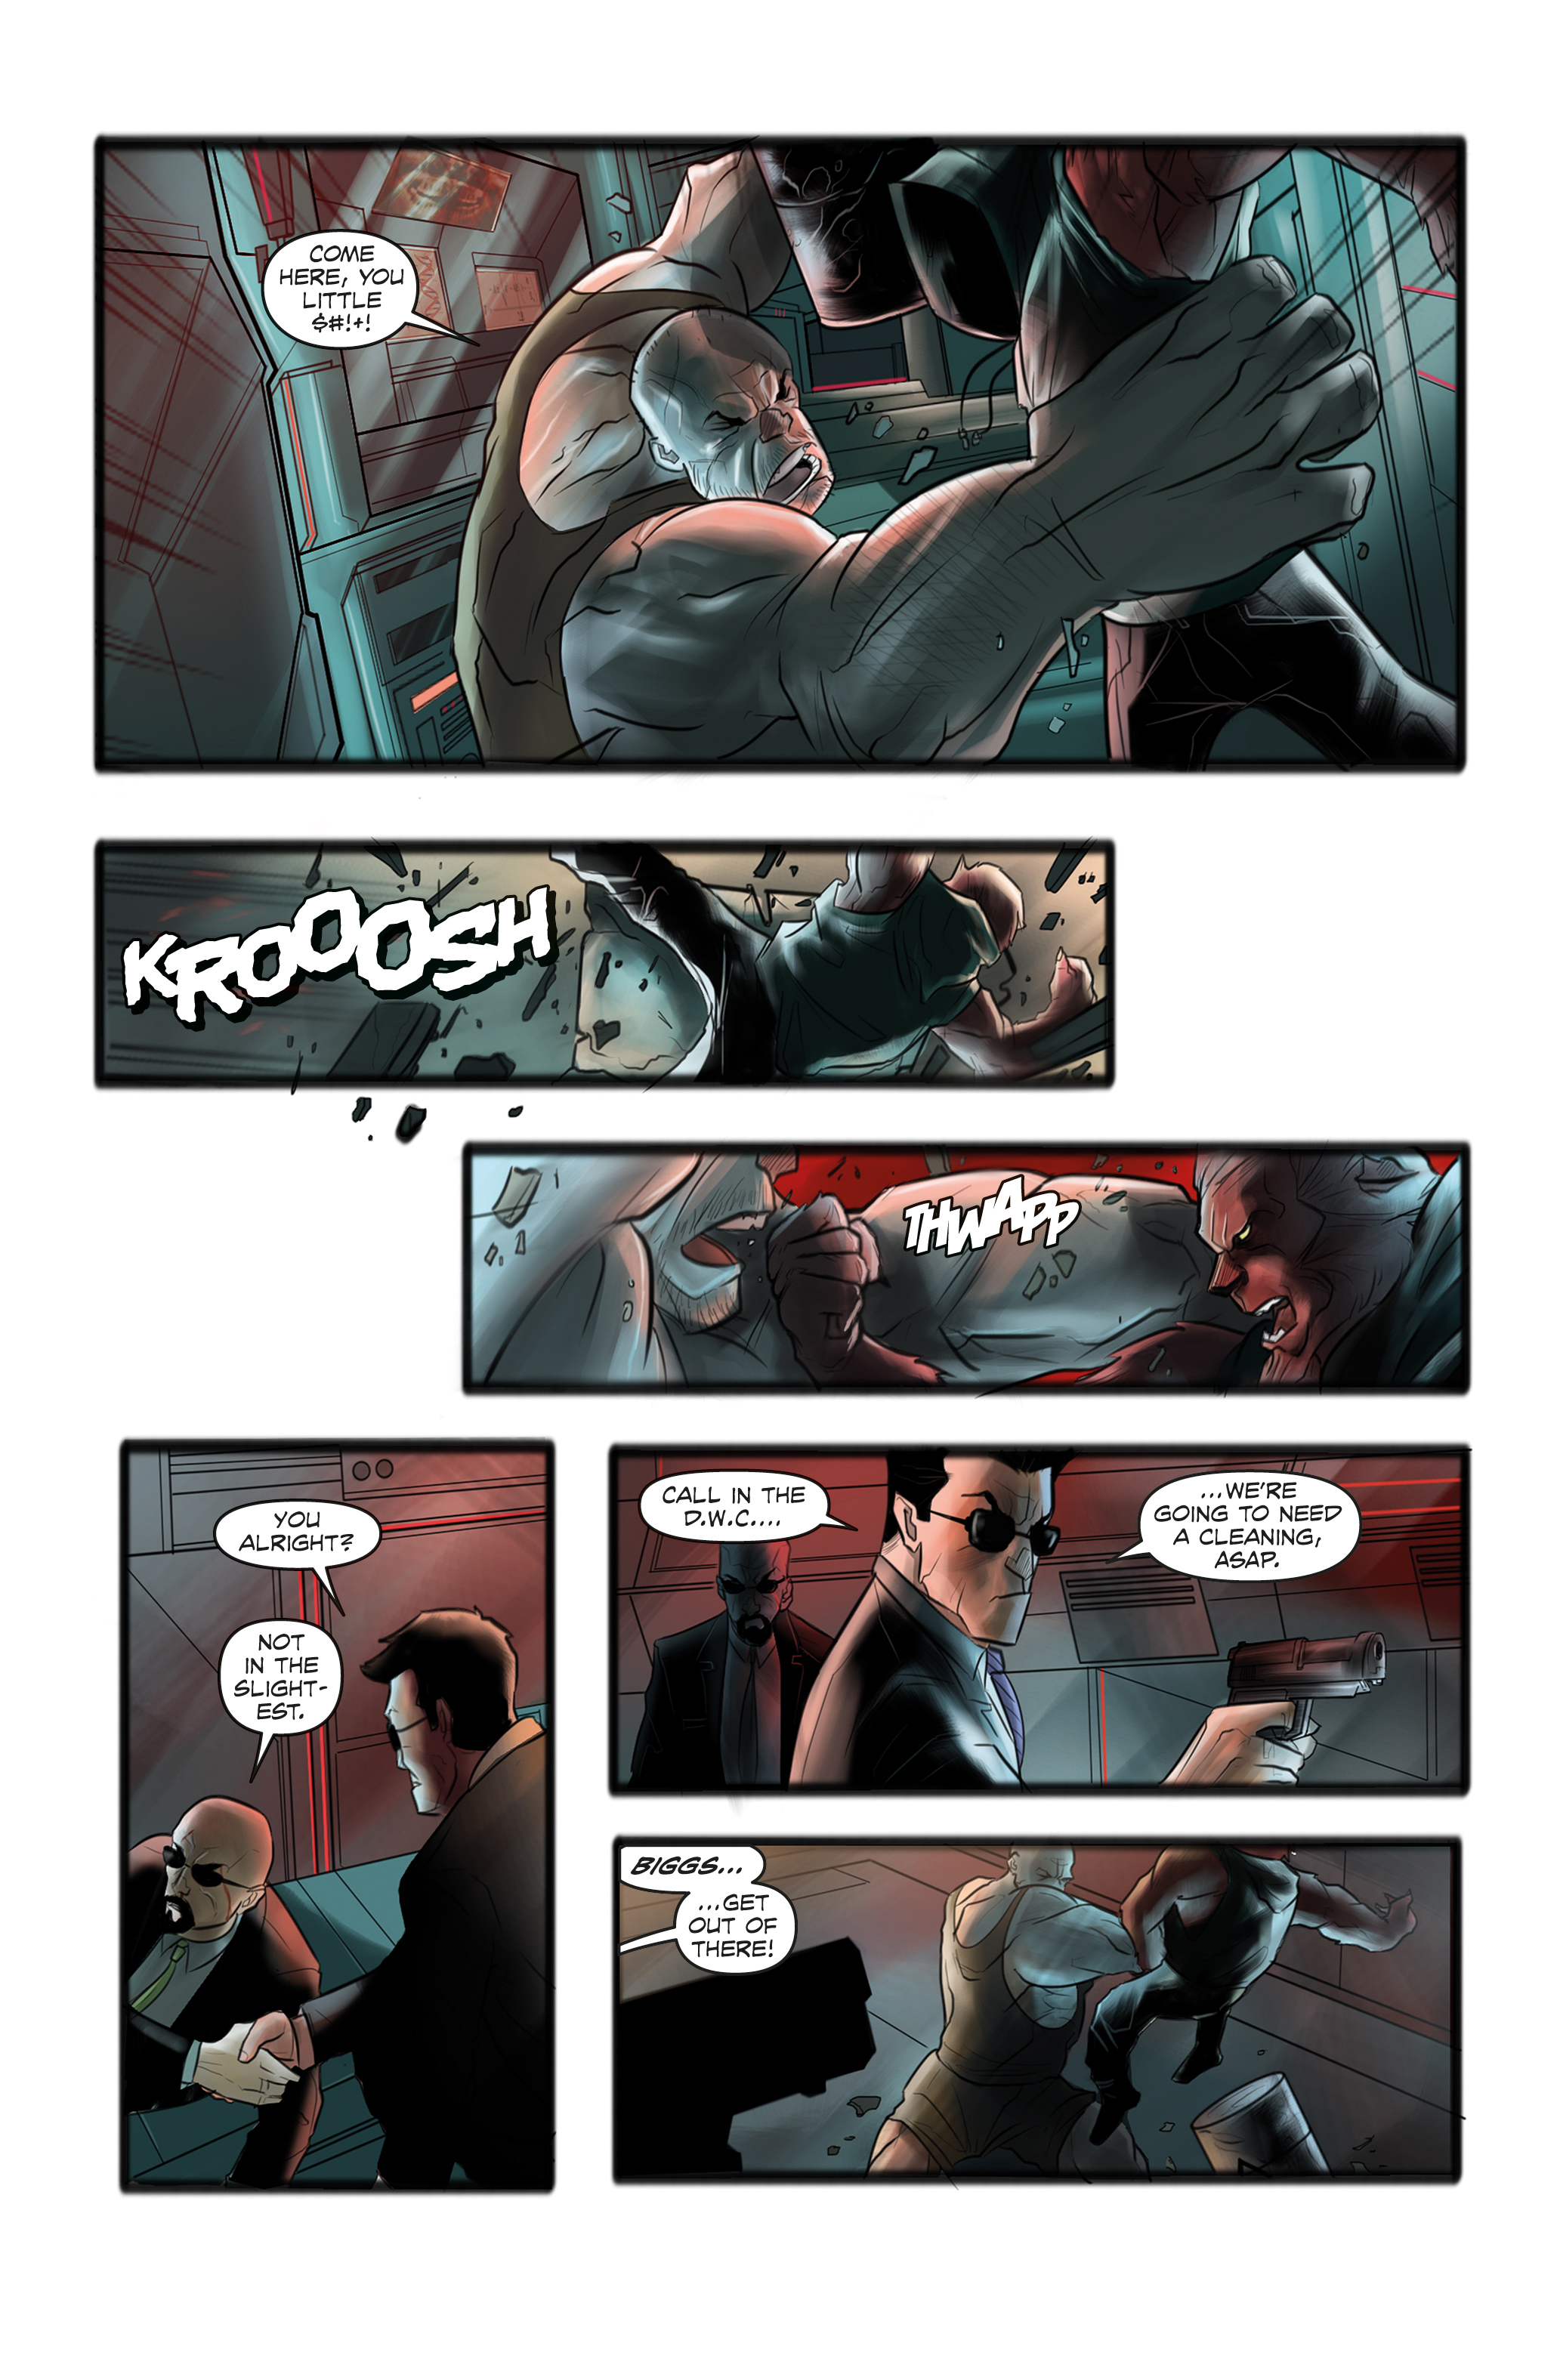 Shelter Division #1 Page 4-01.jpg